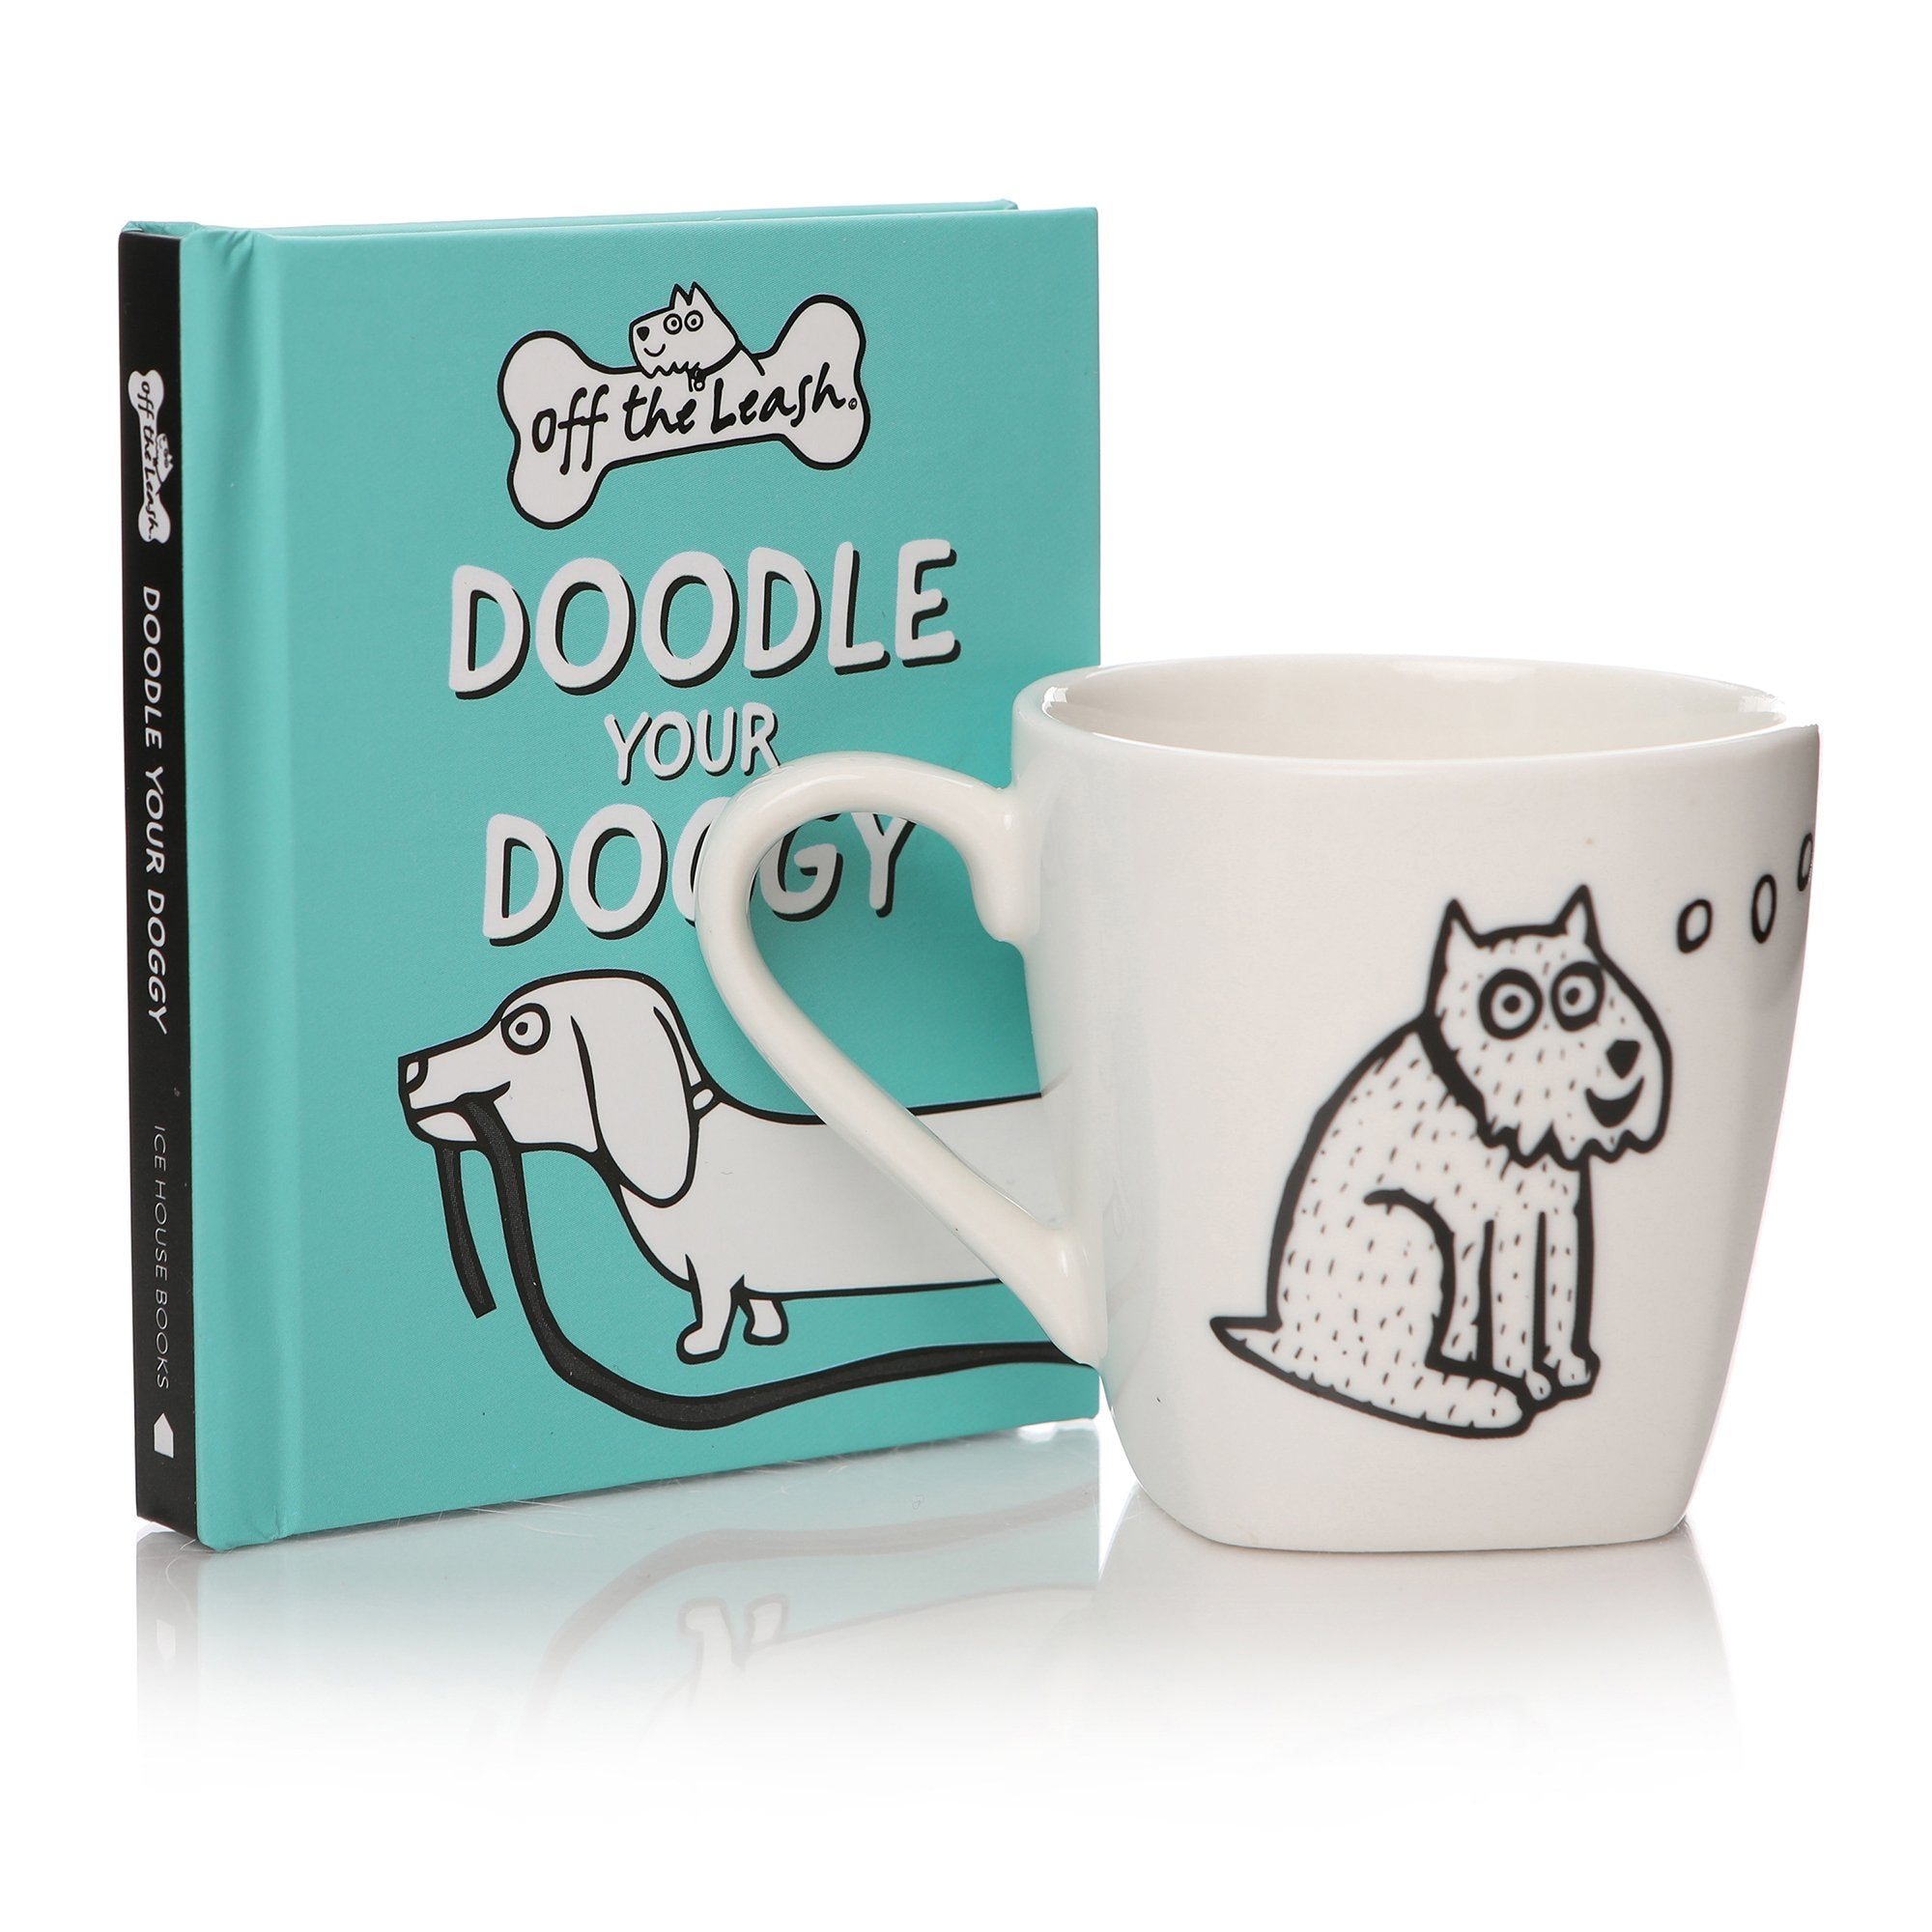 Off the Leash: Mini Book & Espresso Cup Gift Set - Half Moon Bay US